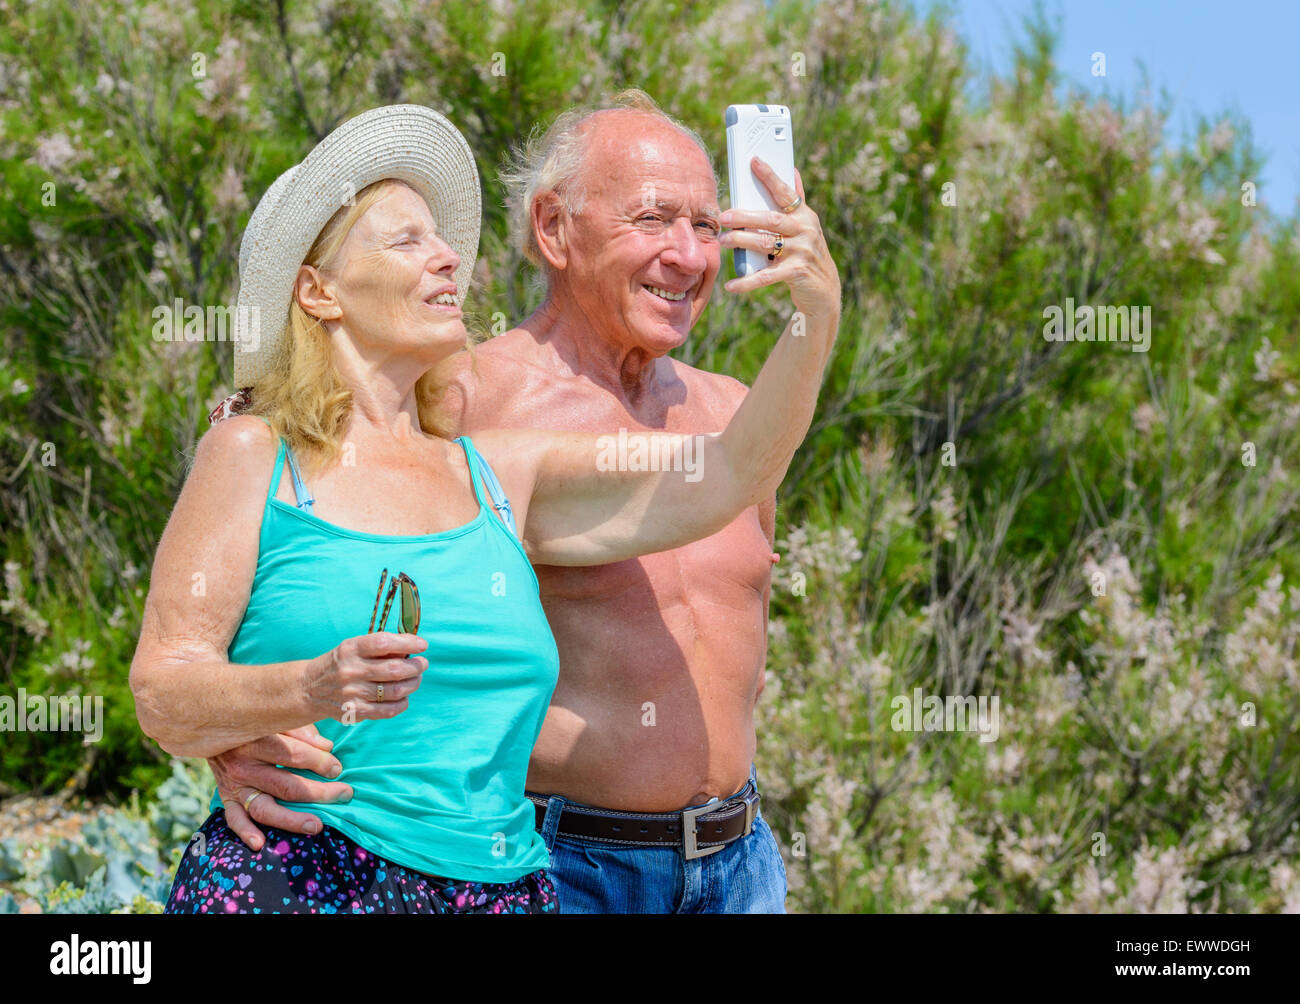 Elderly couple taking a selfie photo of themselves on a hot sunny day in Summer in the UK. Happy elderly couple. - Stock Image